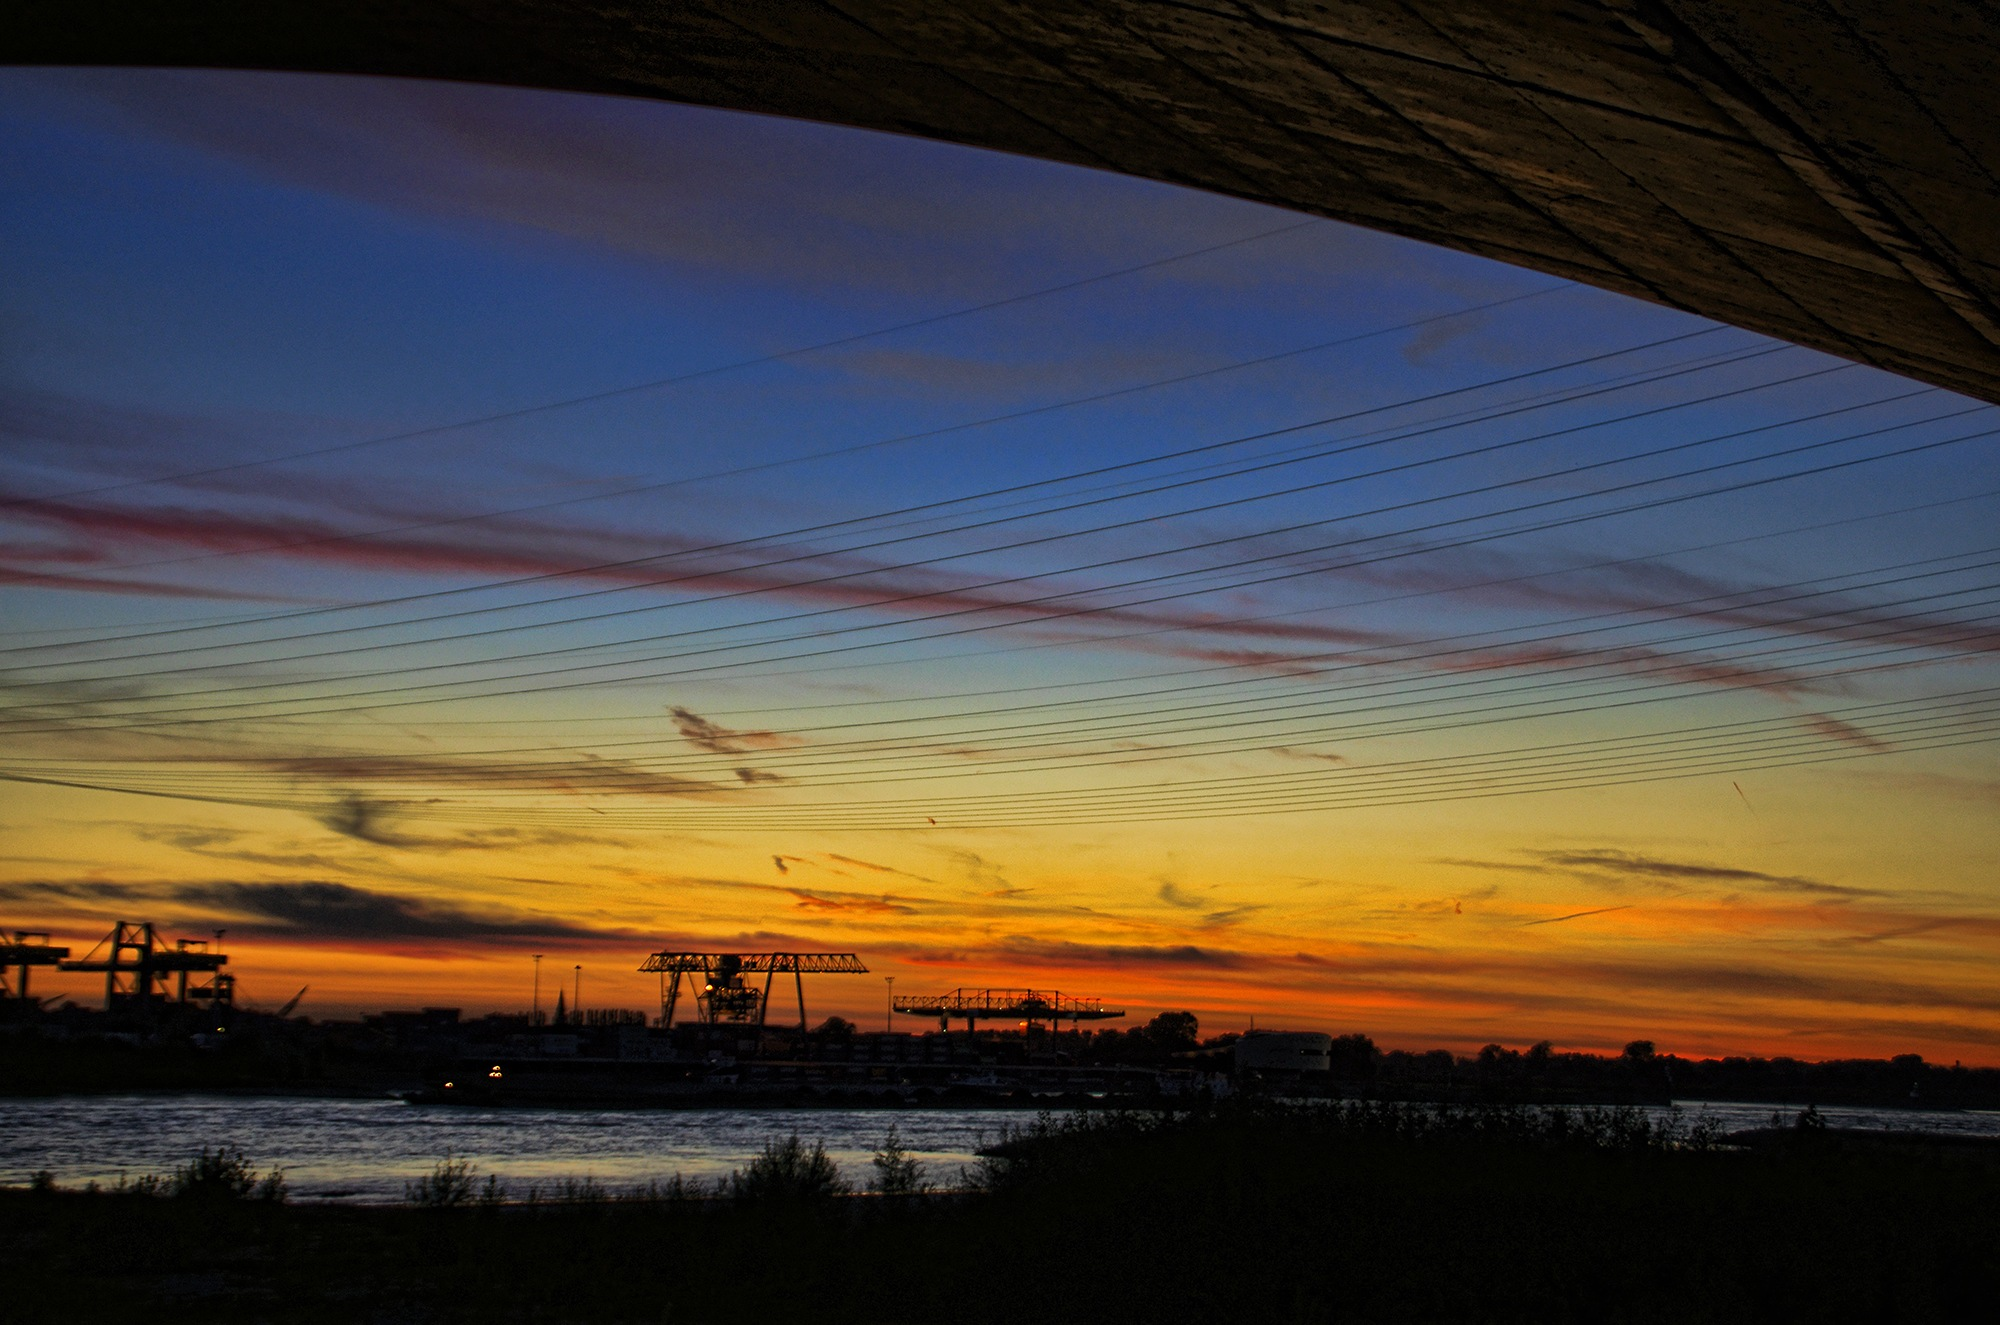 Under the bridge by Watze D. de Haan